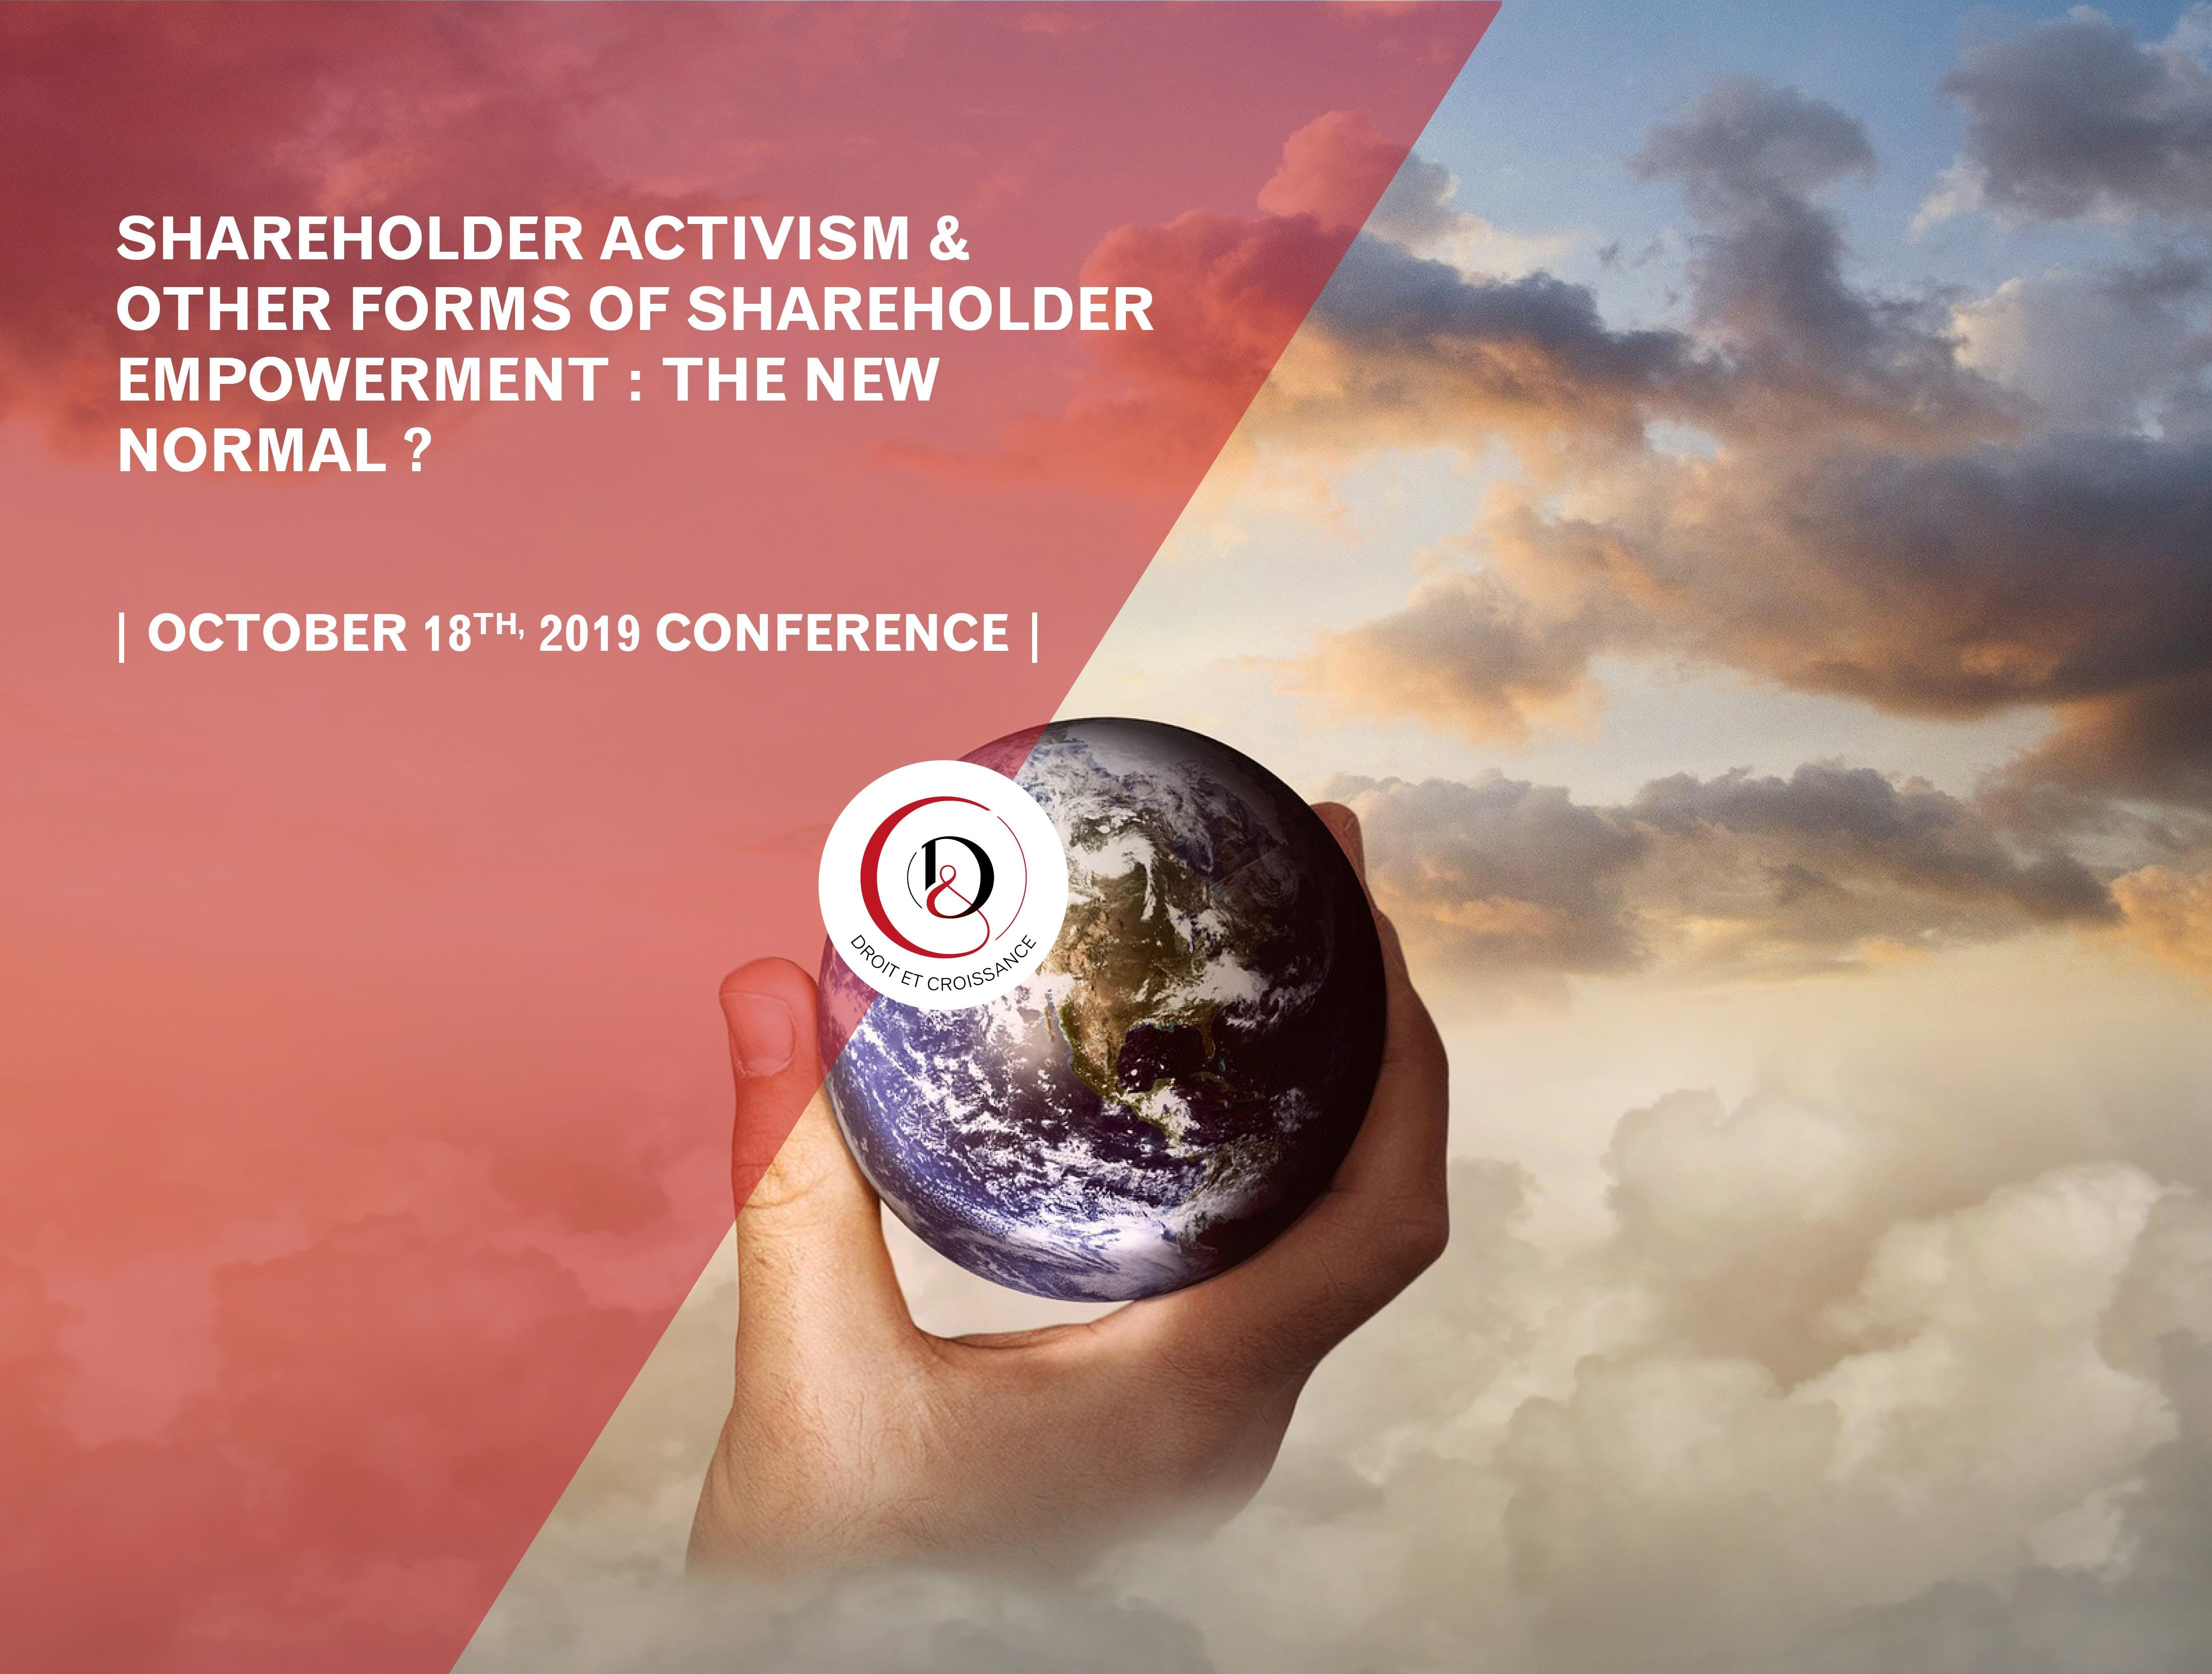 Corporate governance and shareholders engagement conference: the new normal